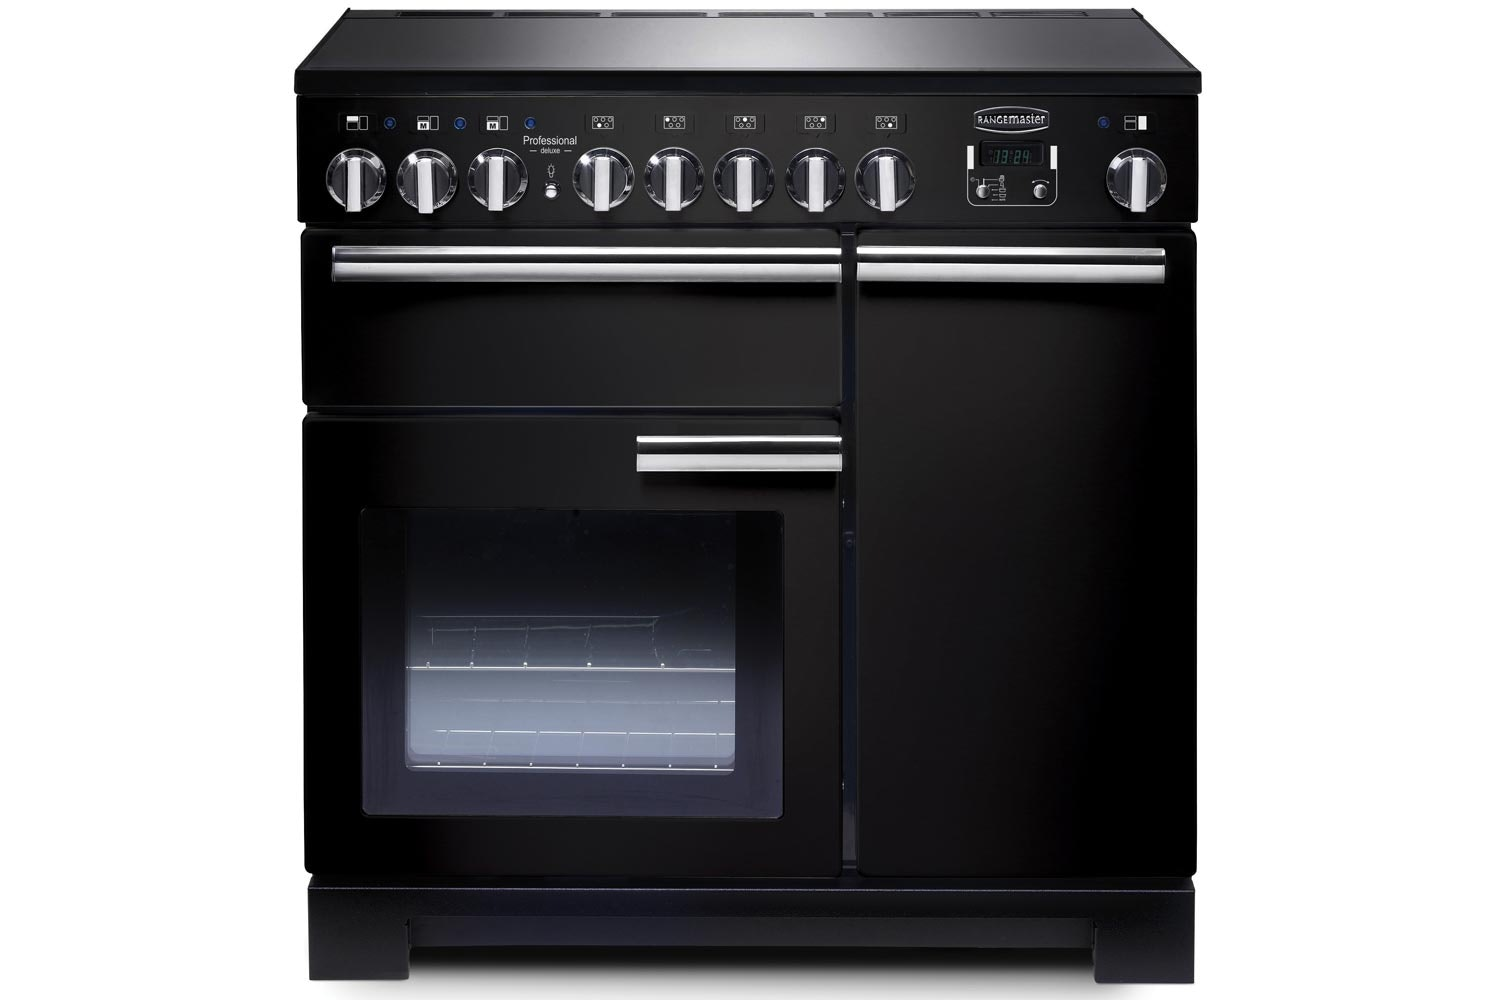 Rangemaster Pro Deluxe 90cm Cooker | Induction